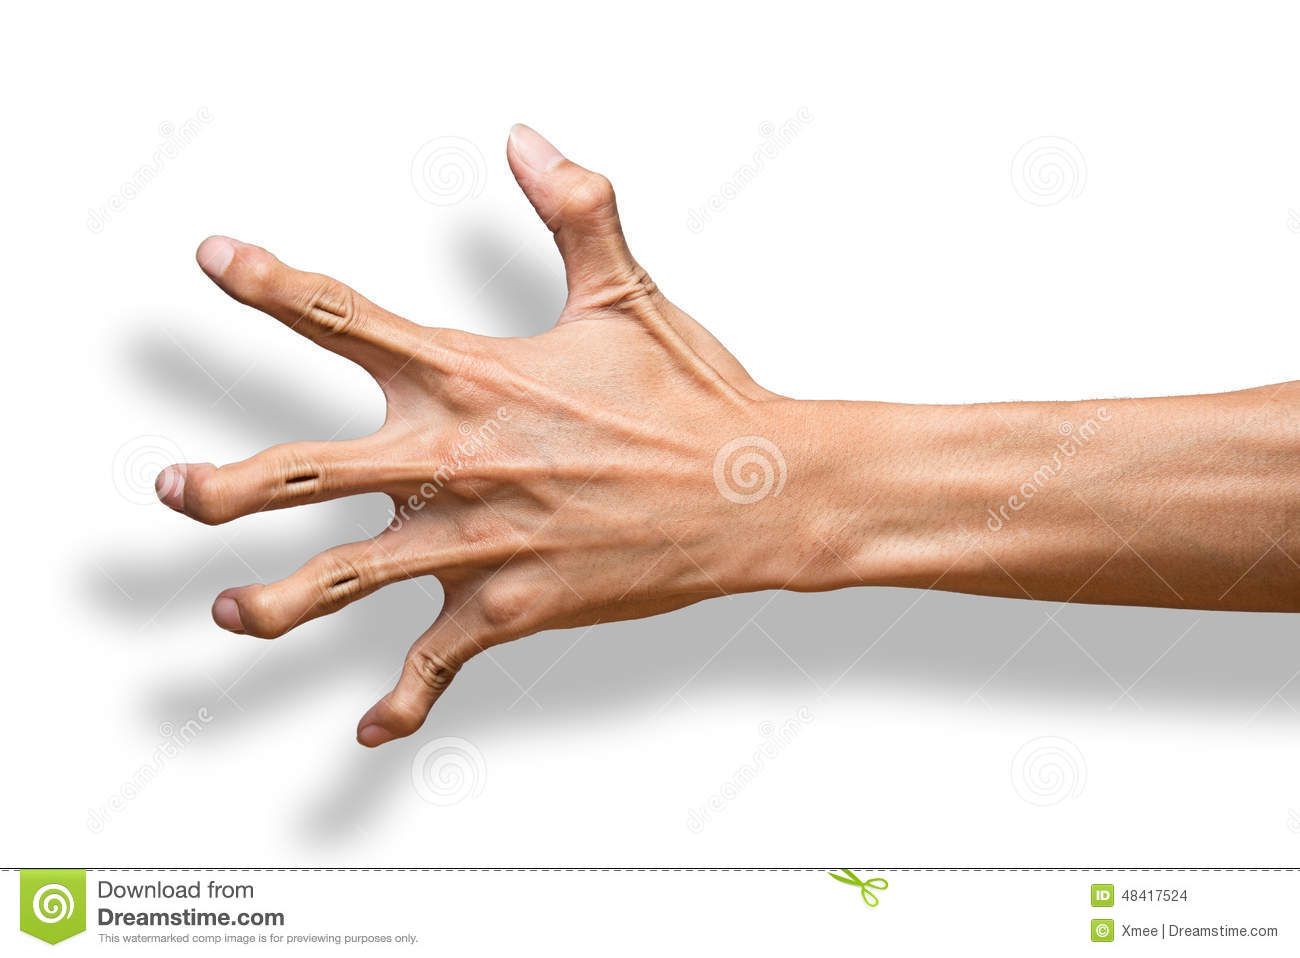 Male Hand Making A Claw Gesture Isolated On A White Background